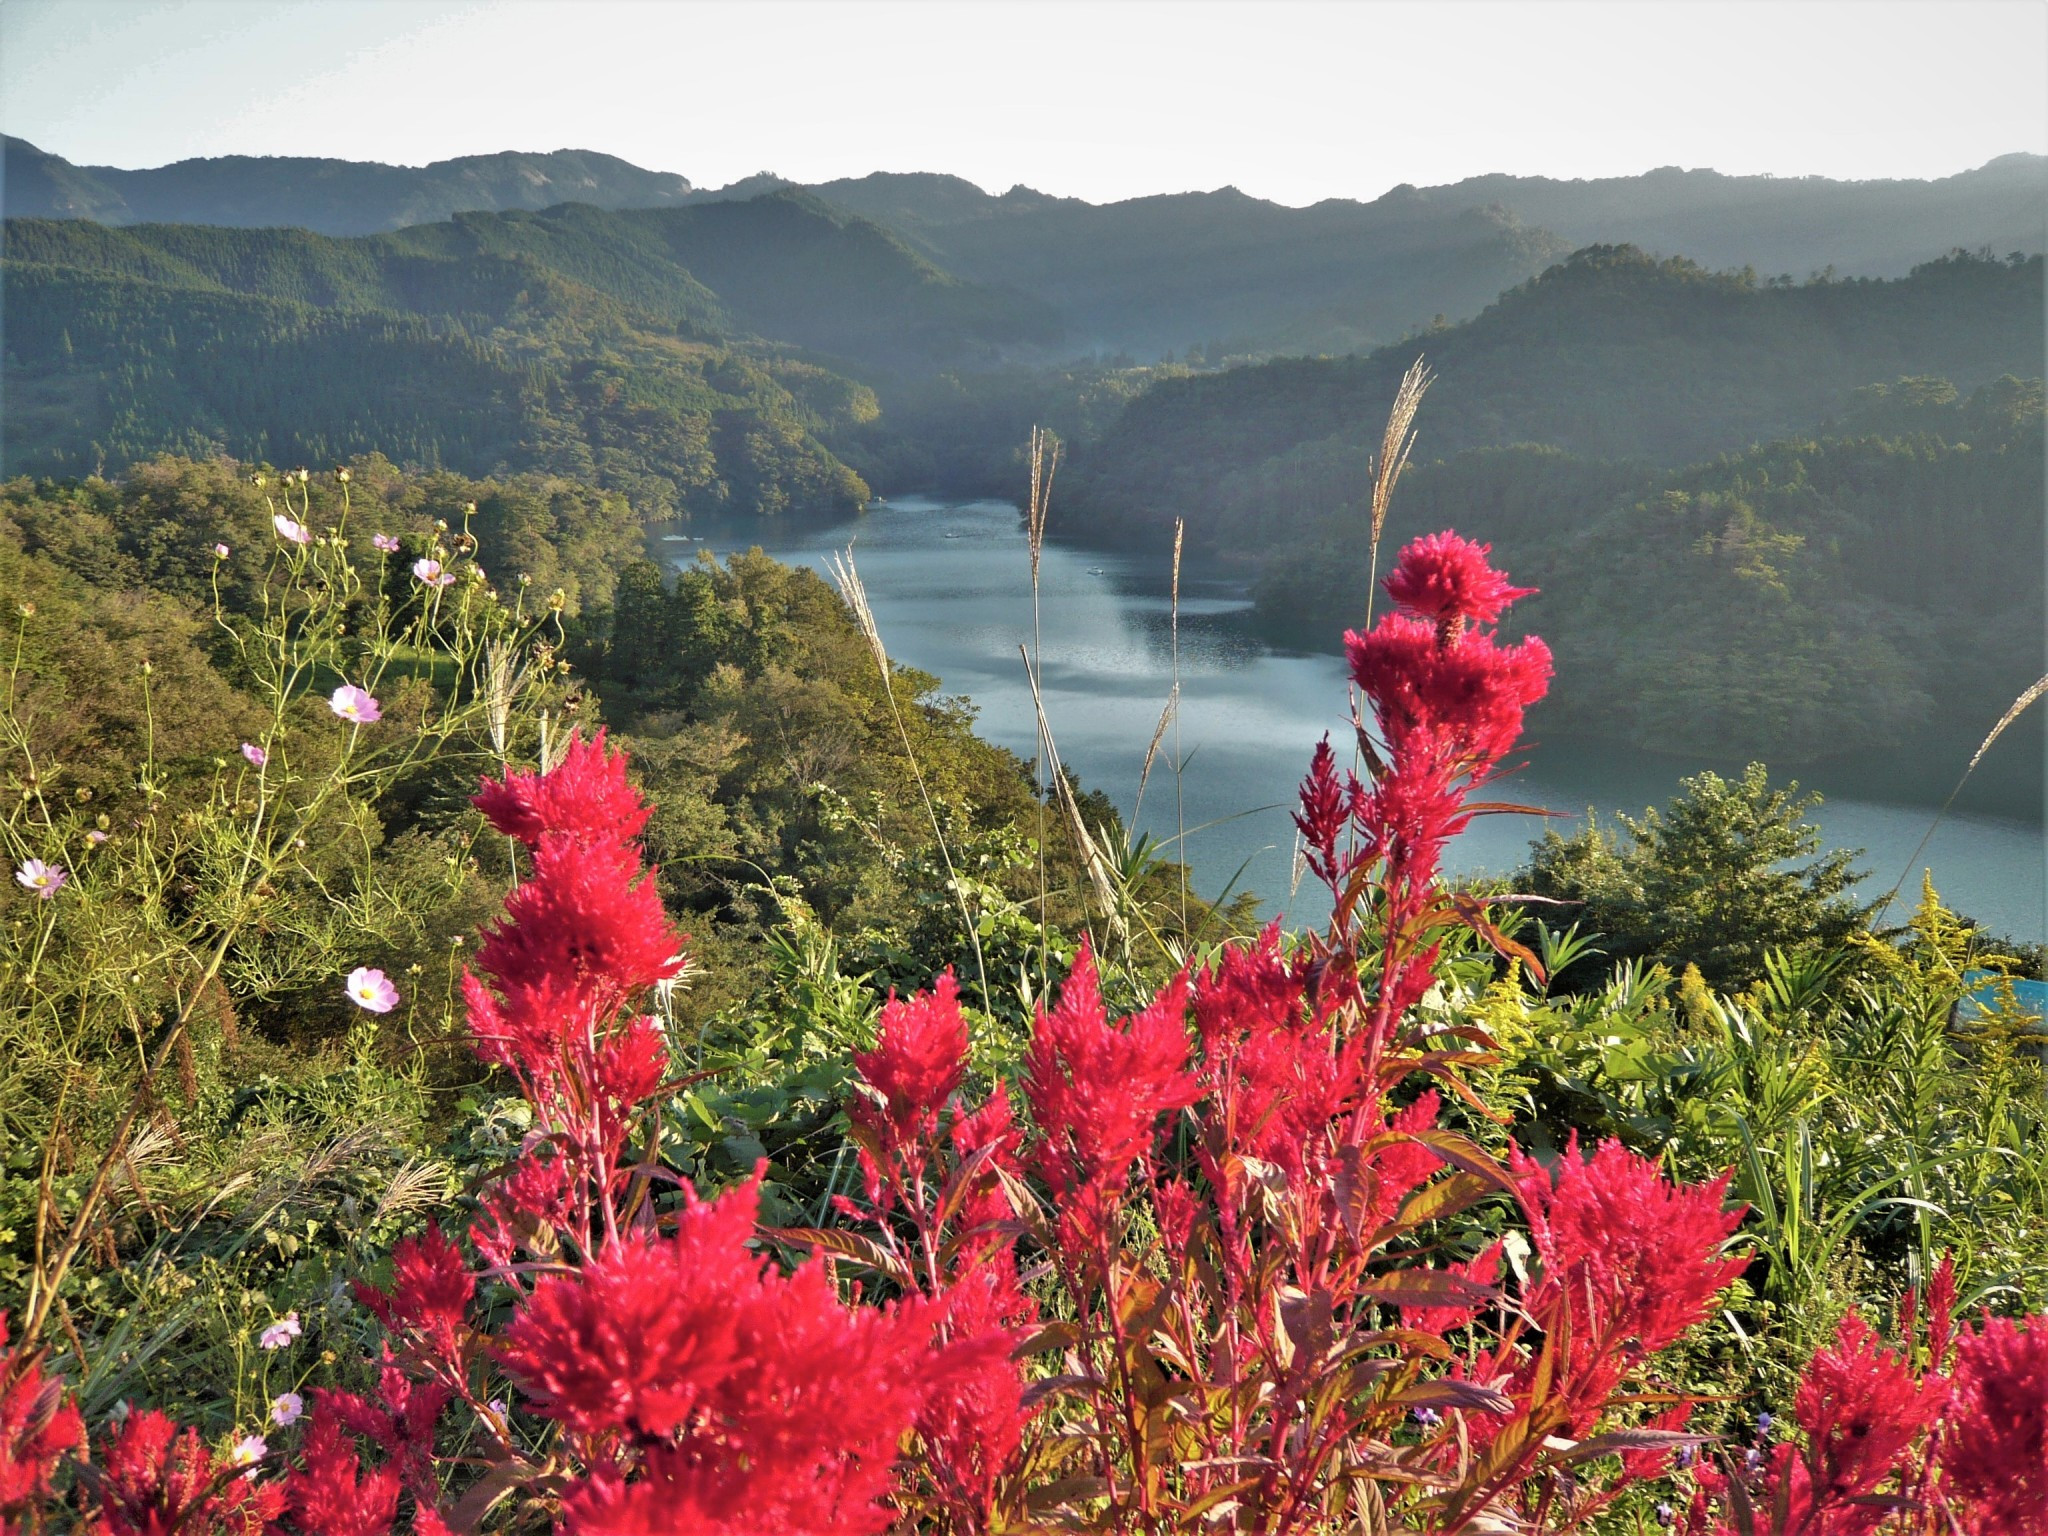 A scenic view of a tranquil lake and forested hills with bright red flowers in the foreground.